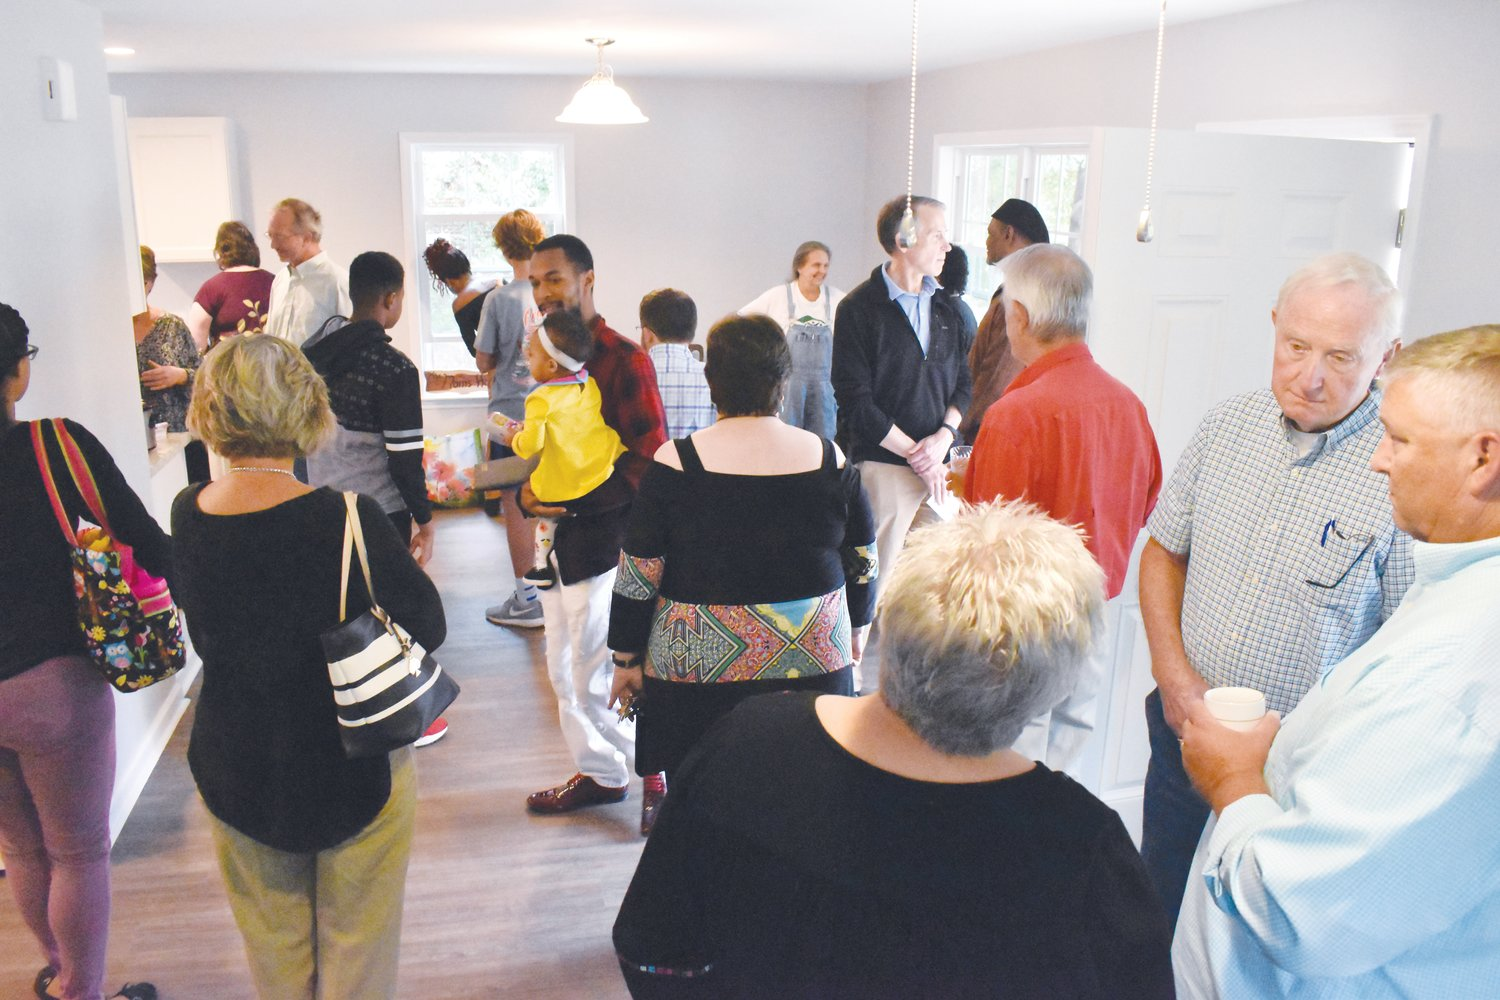 A large crowd gathered Saturday afternoon for the dedication of the newest Habitat for Humanity home in Roxboro.